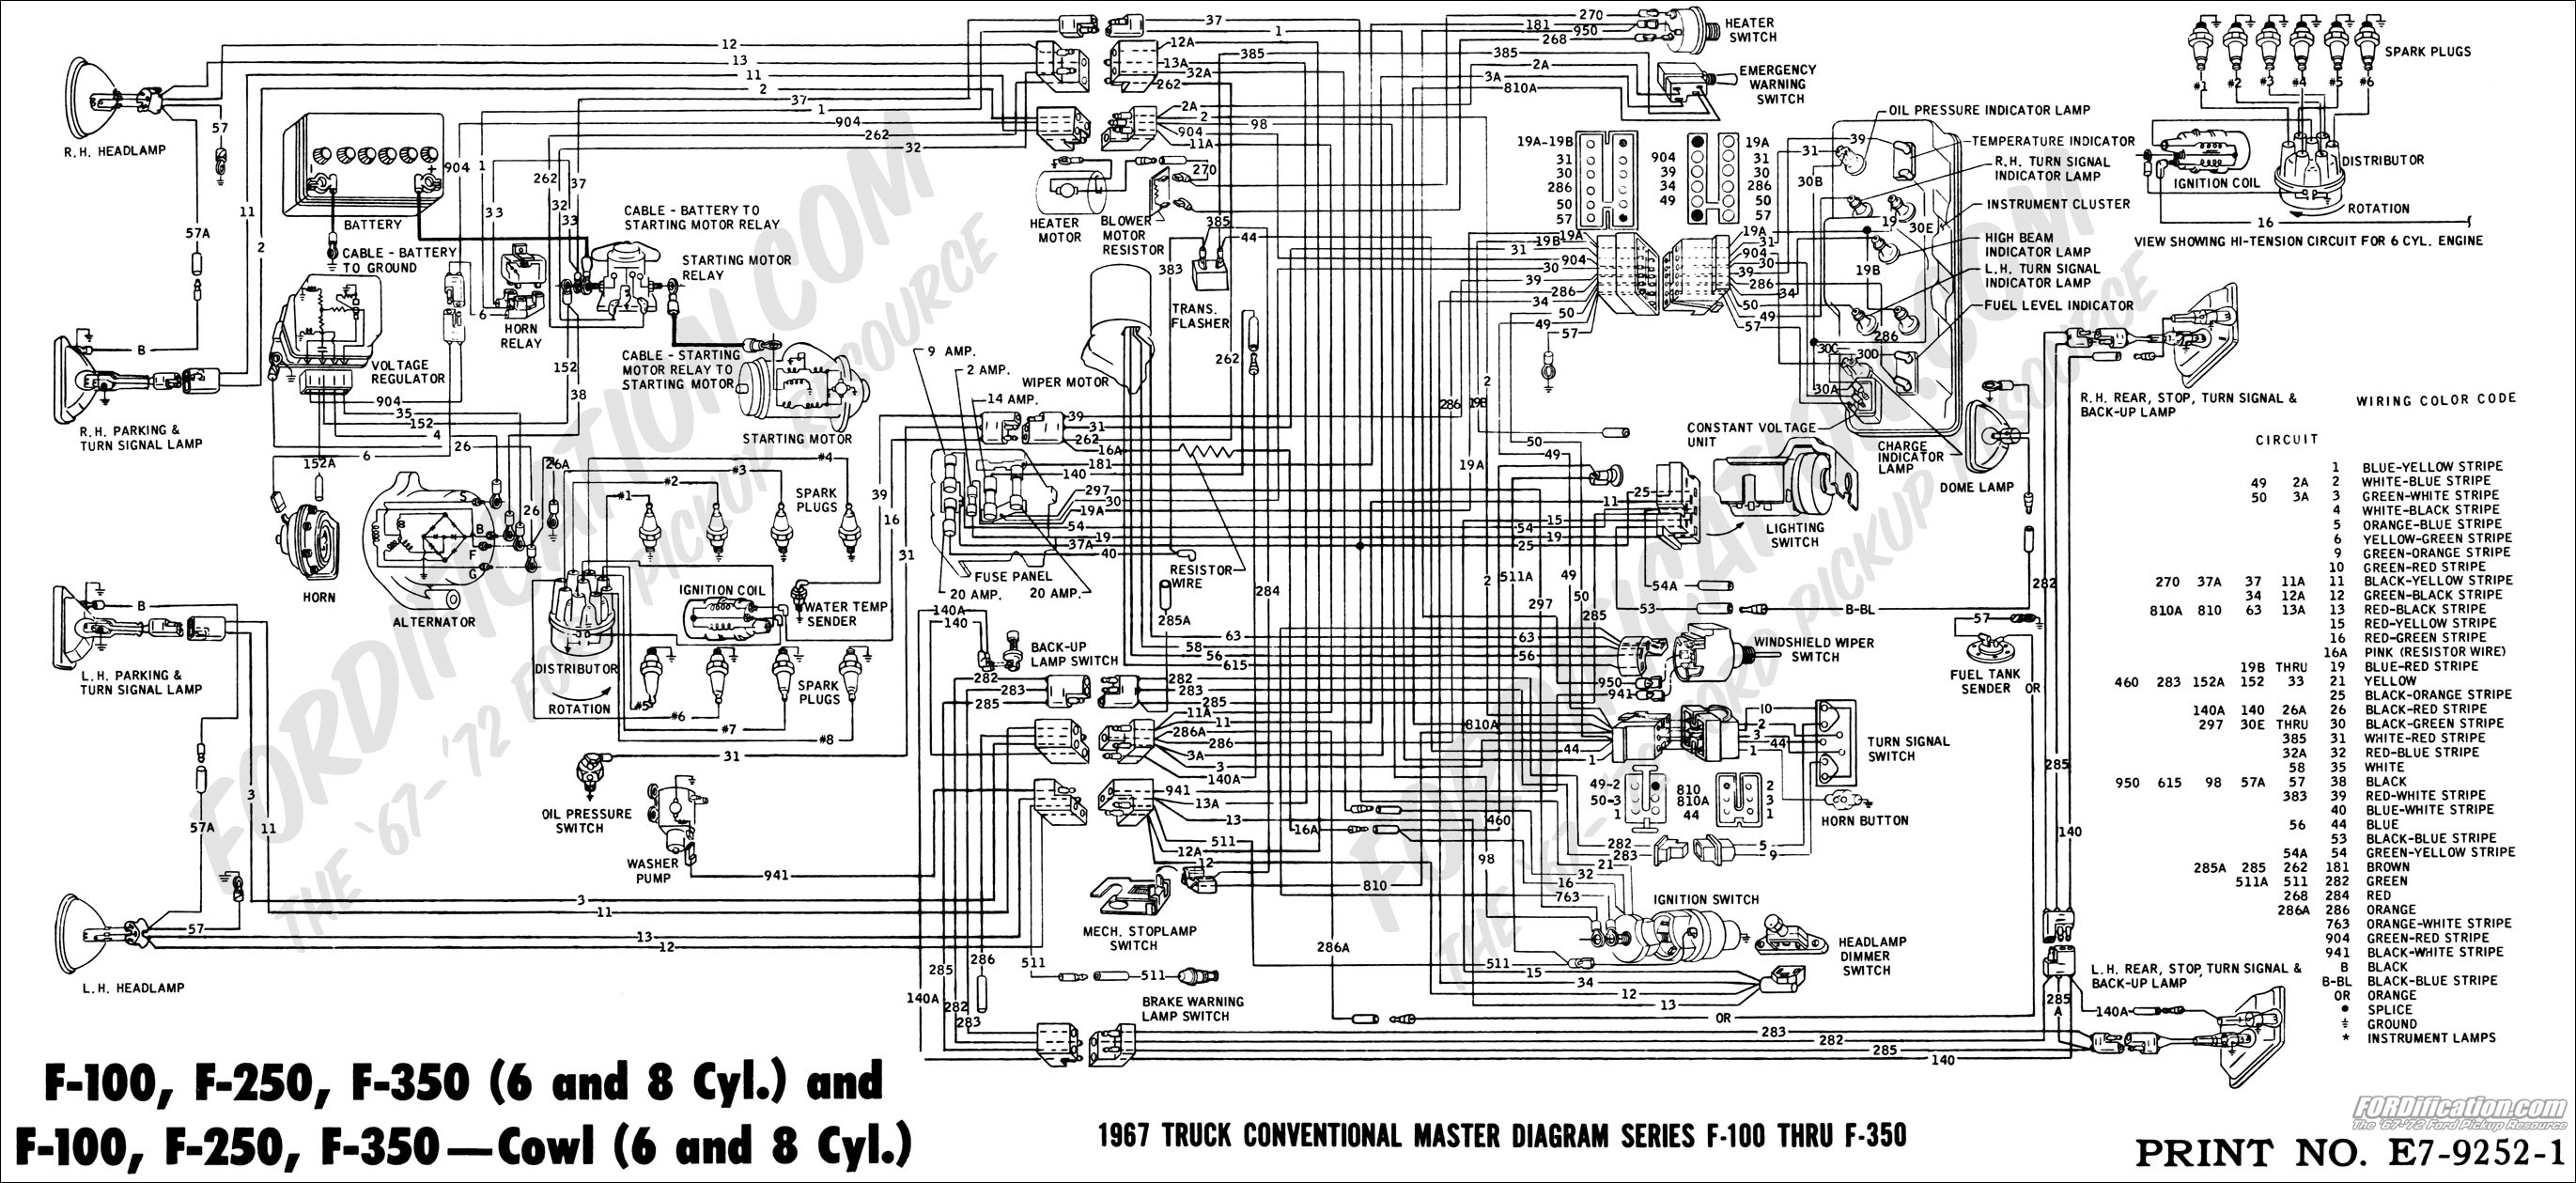 97 Ford Ranger Engine Diagram Wiring 93 F700 Free Picture Of